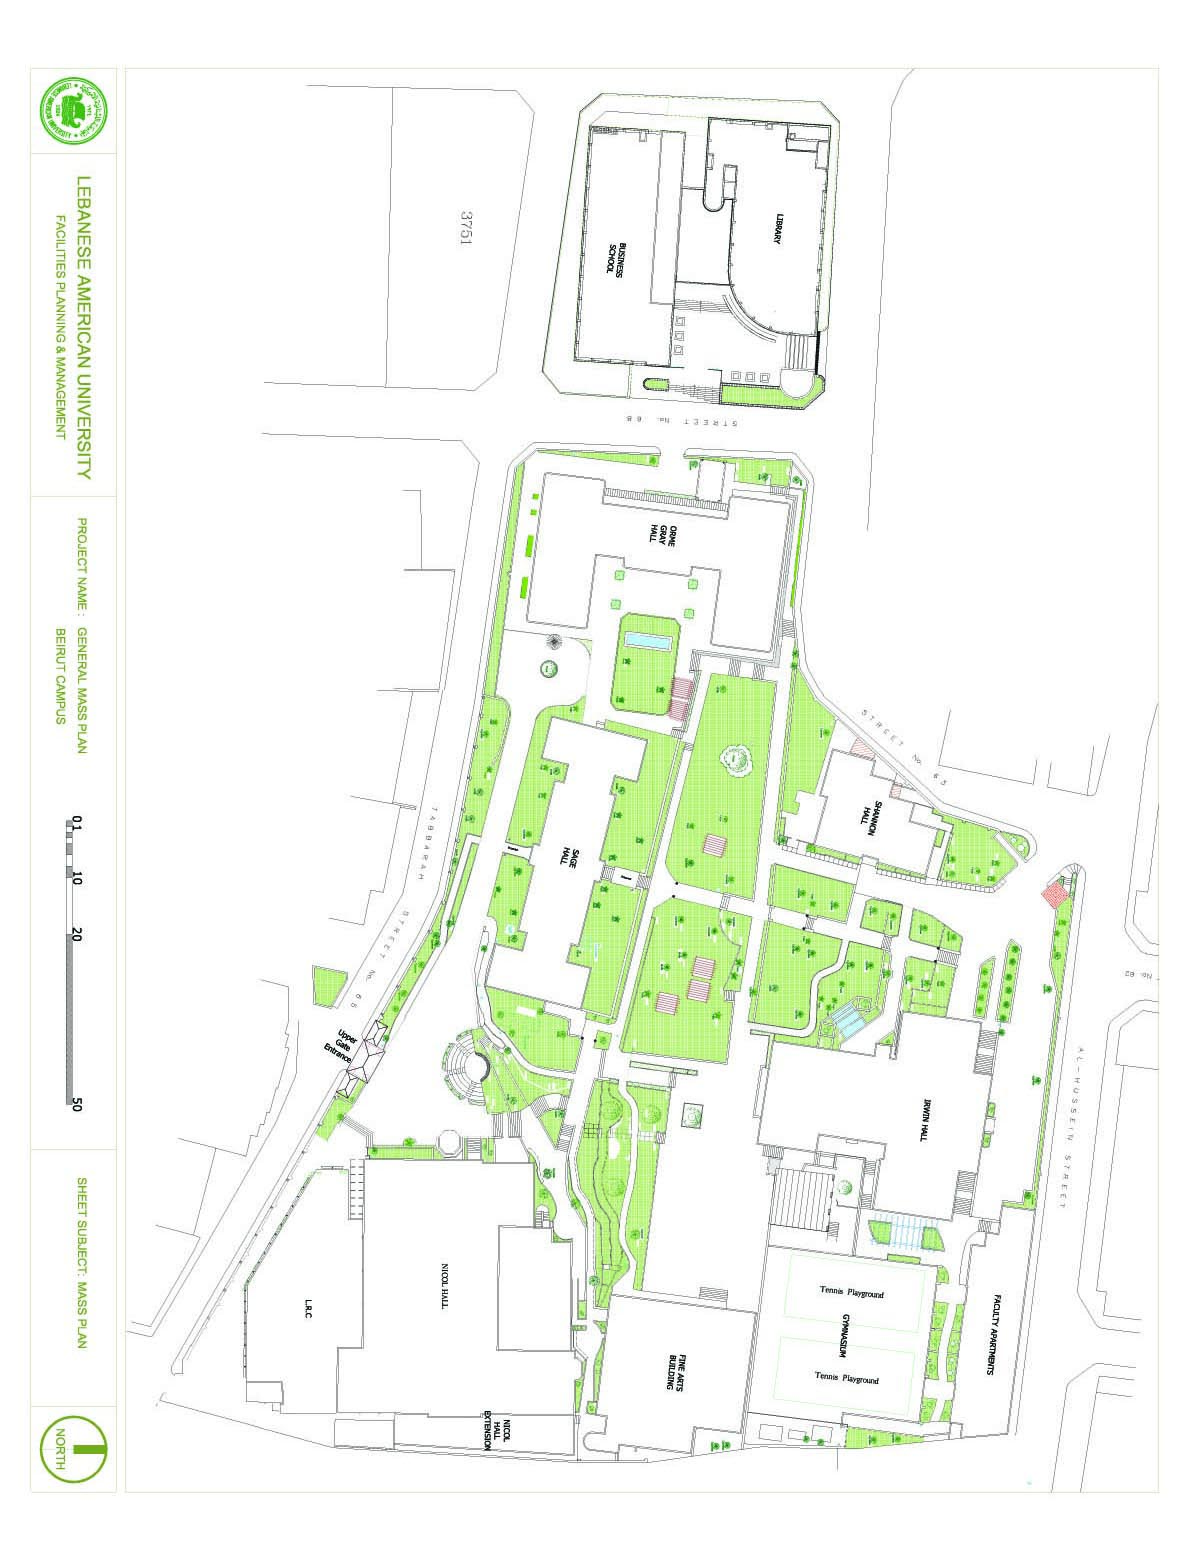 Parasite drawings 3 campus site plan for Site plan drawing online